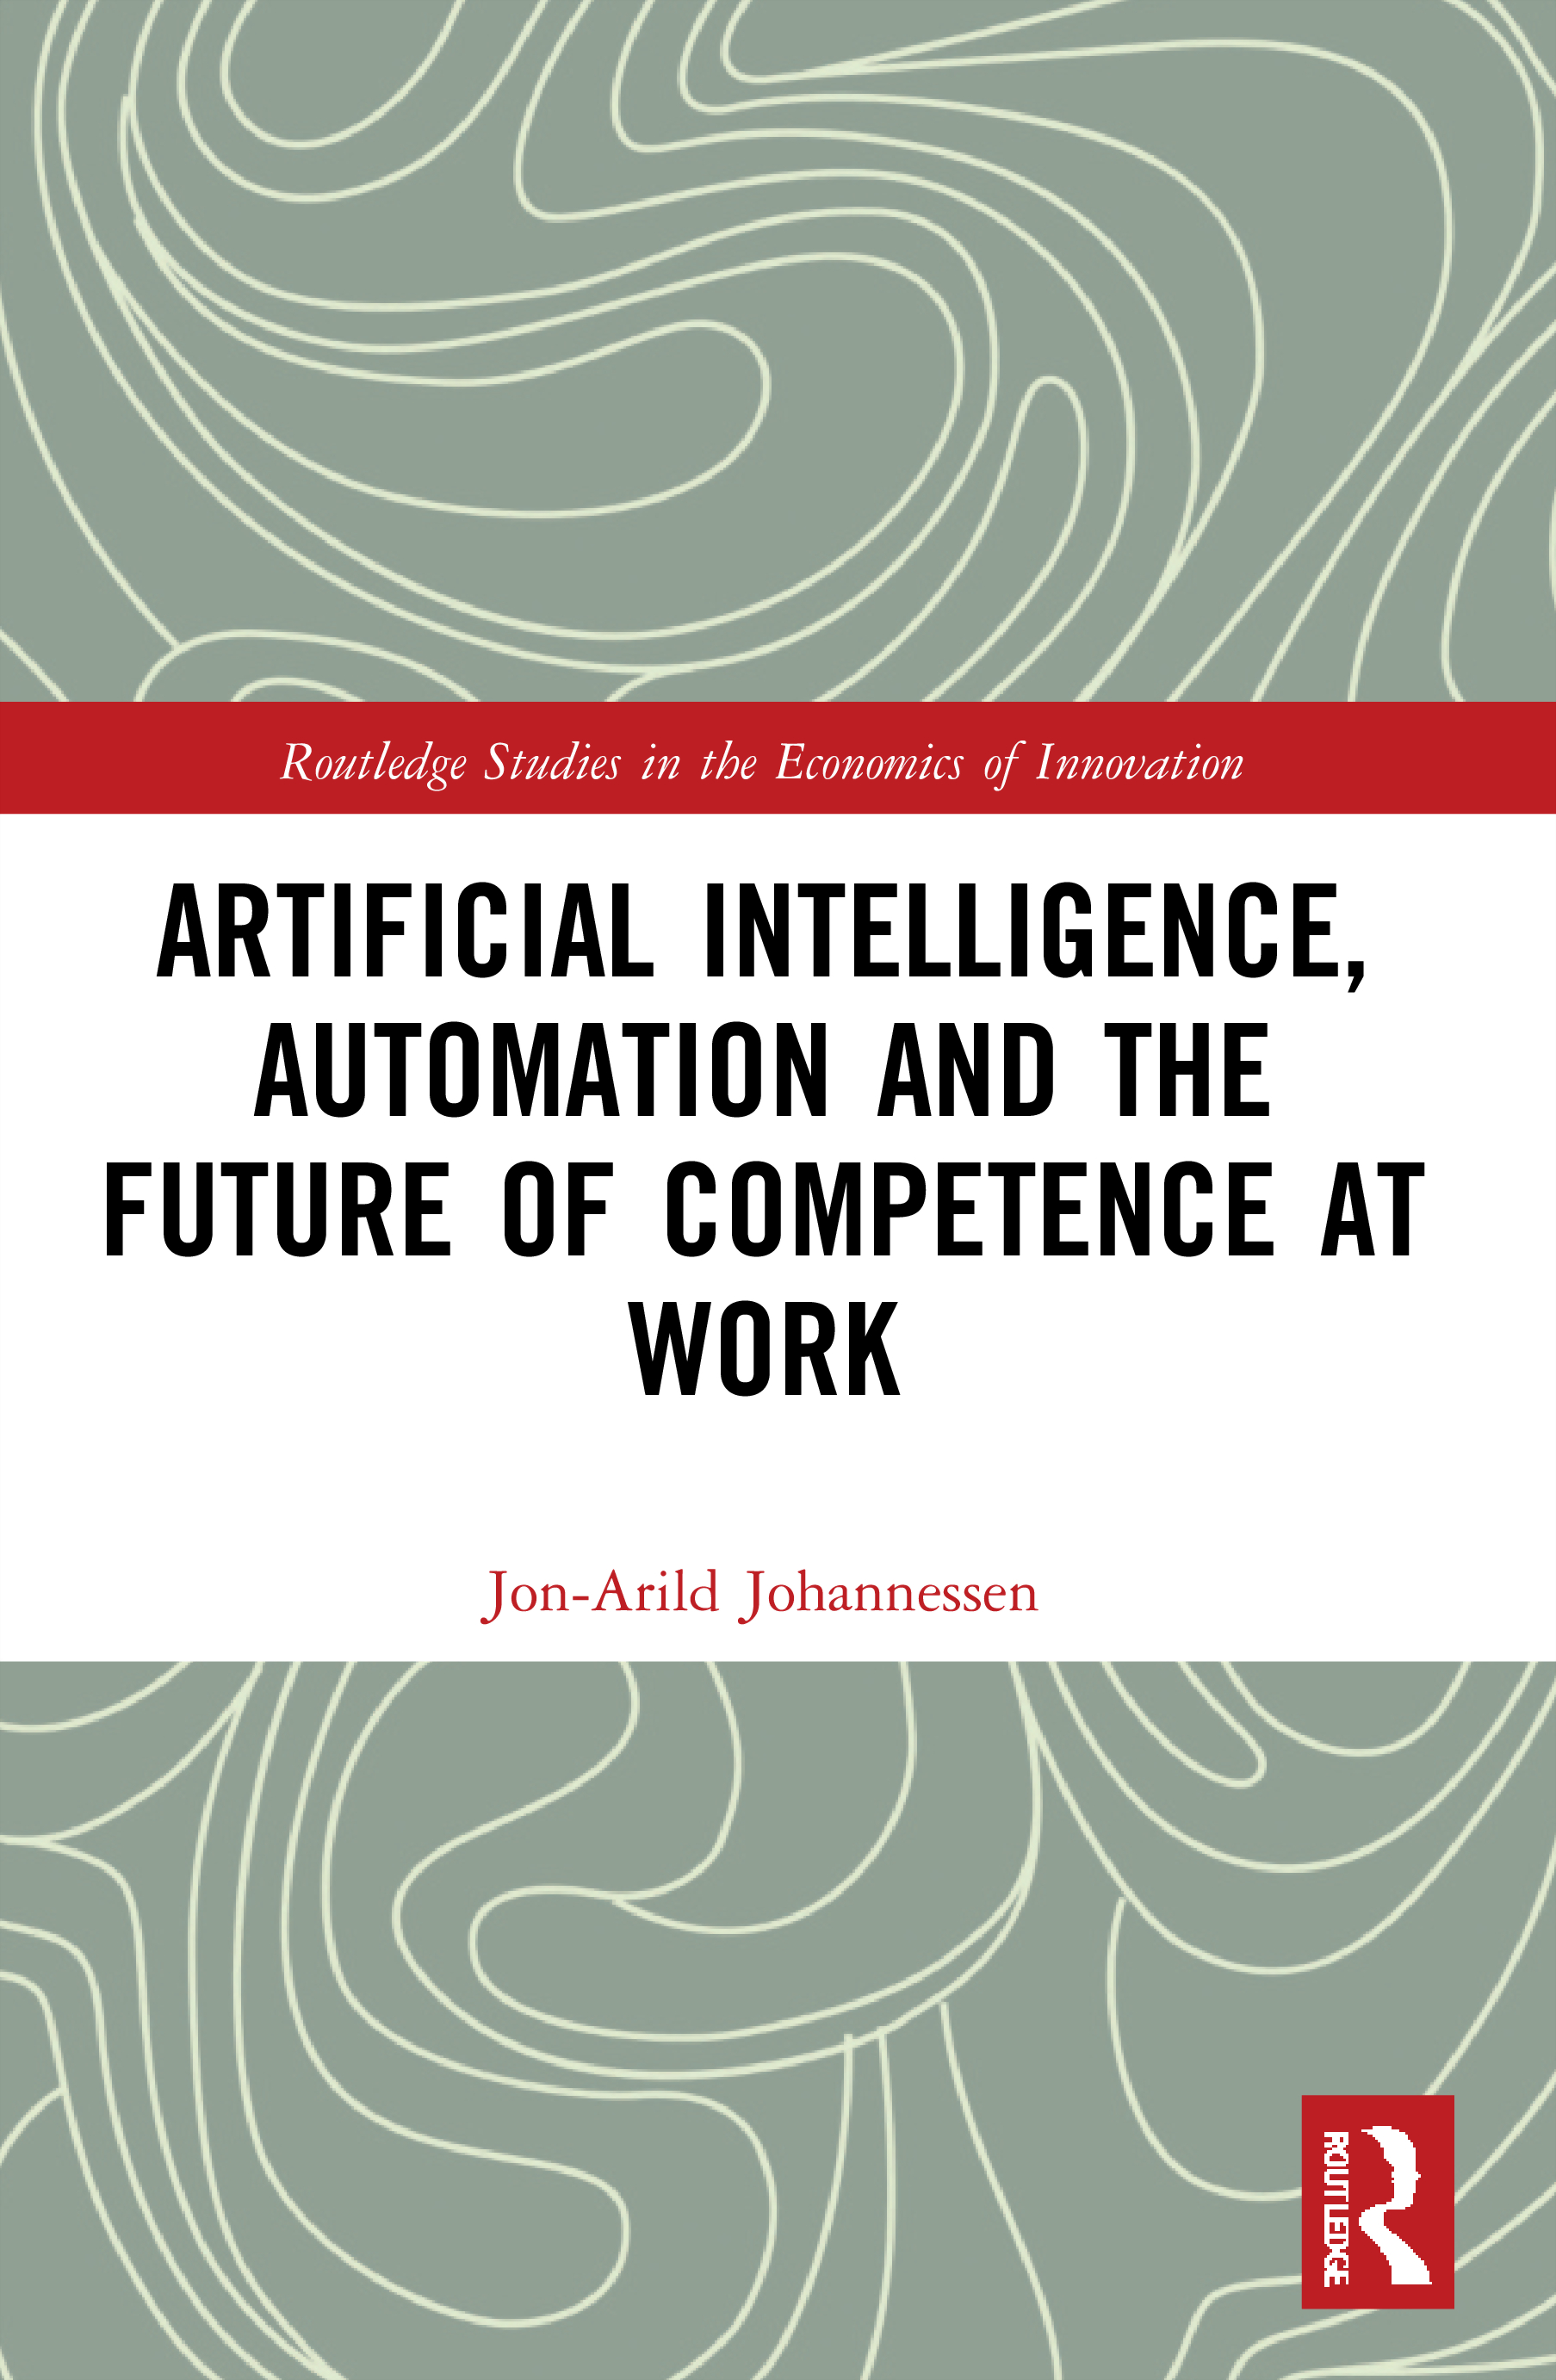 Artificial Intelligence, Automation and the Future of Competence at Work